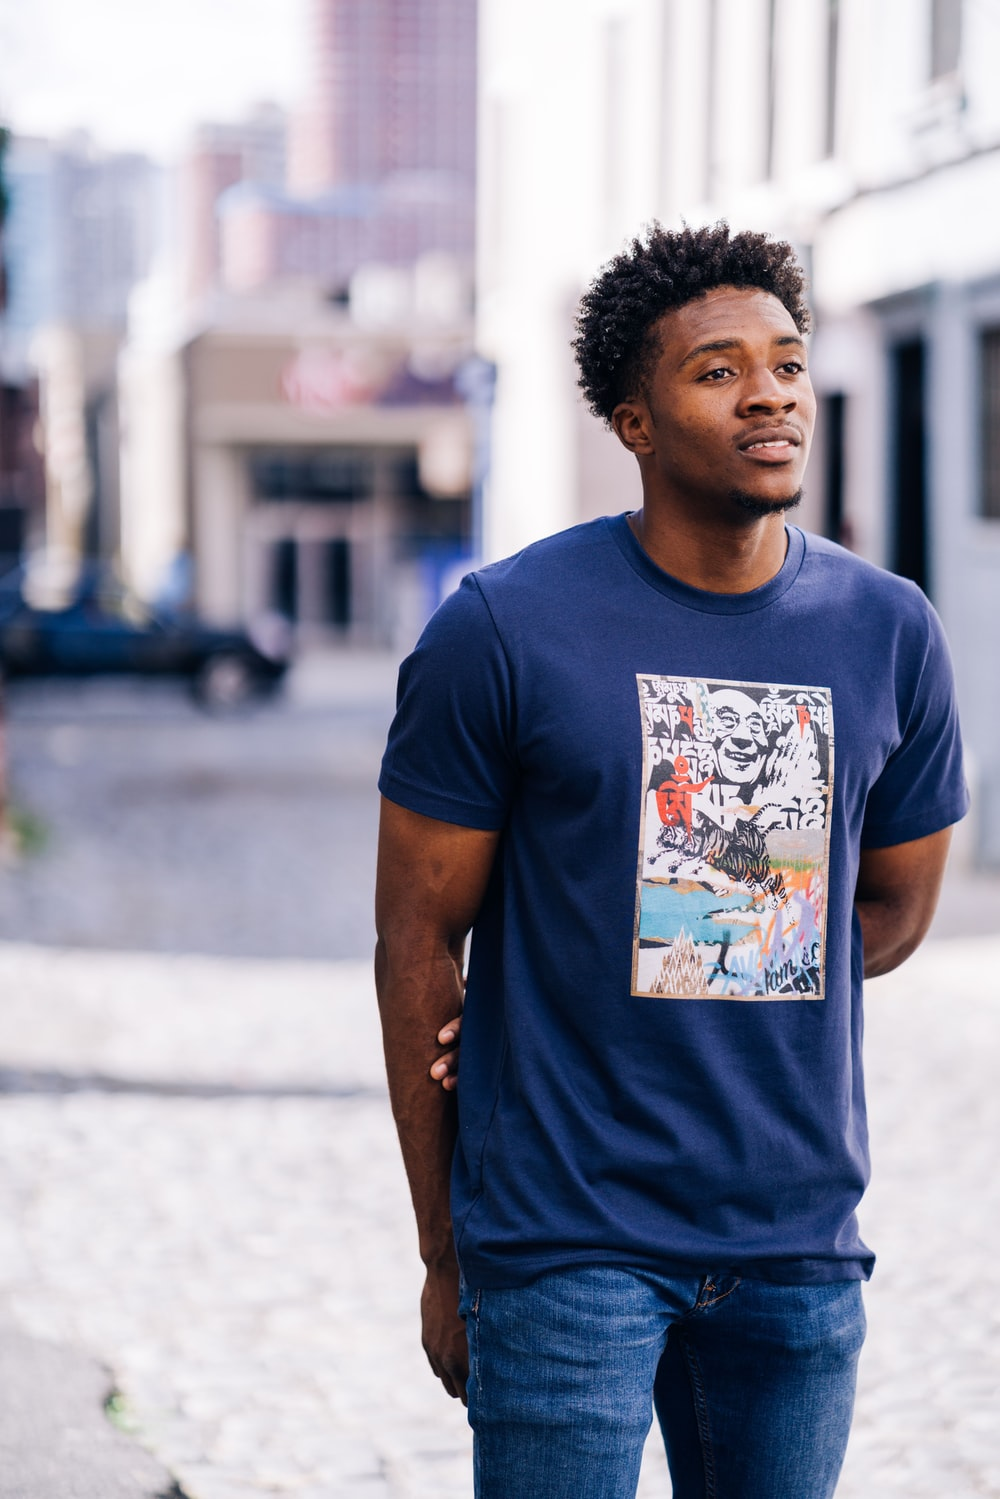 man in blue crew neck t-shirt standing on road during daytime